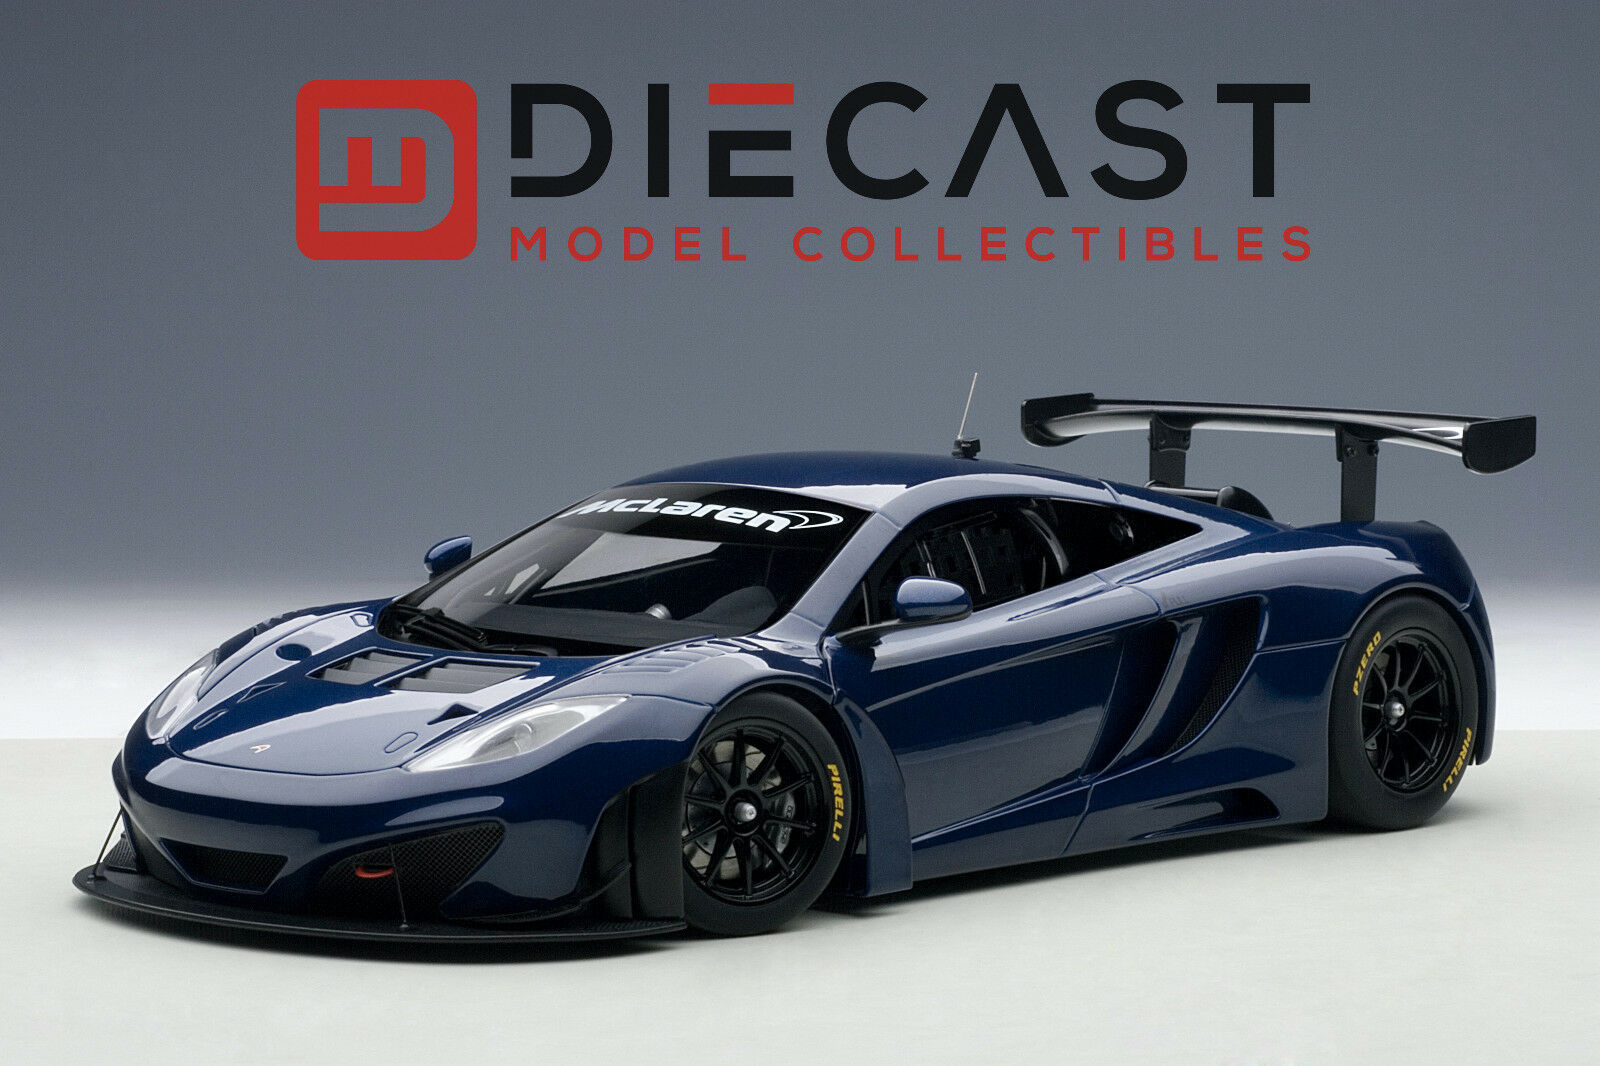 AUTOART 81344 MCLAREN 12C GT3, AZURE blueE 1 18TH SCALE